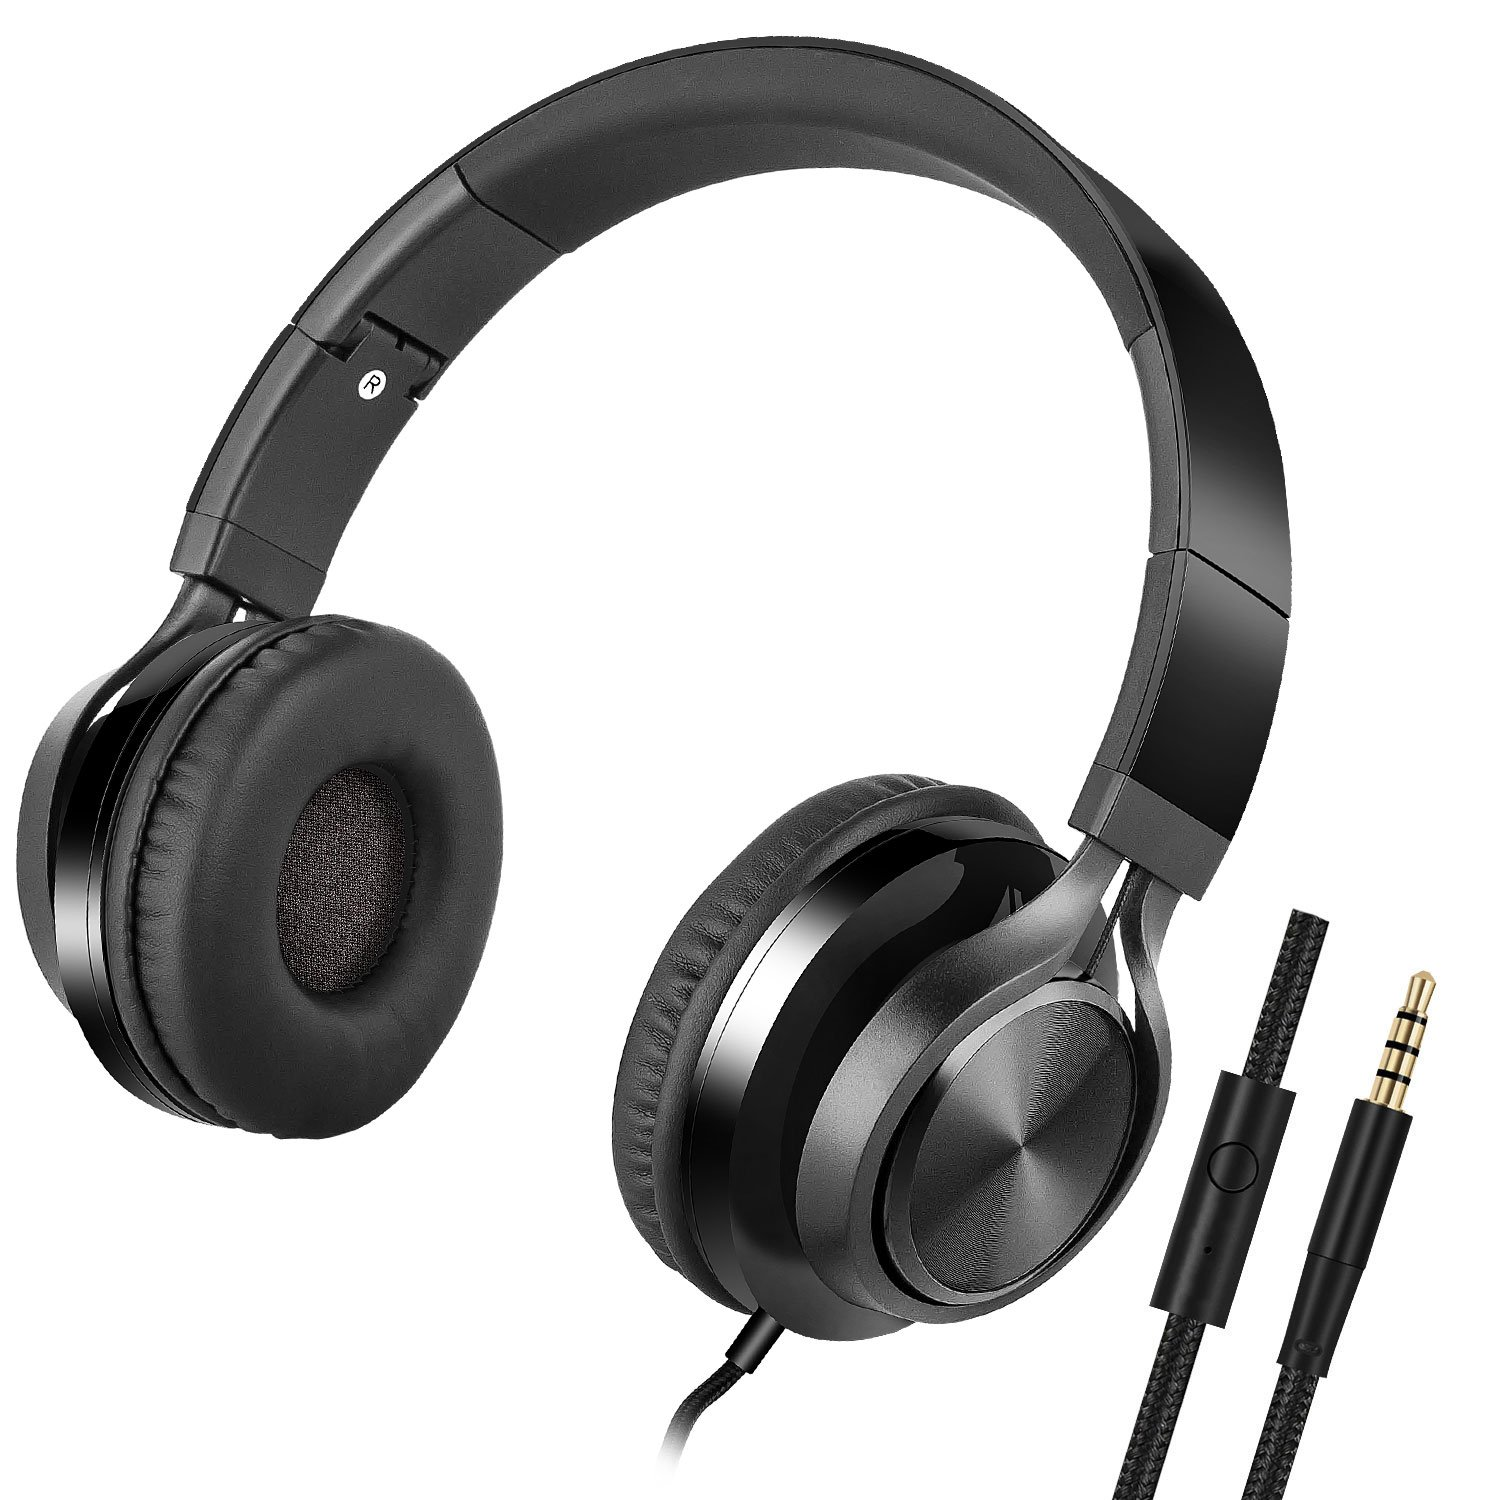 Foldable Computer Headsets, Lightweight Headphones with Microphone and 3.5mm Plug for iPhone,iPod,iPad, Android Smartphones, PC, Laptop, Mp3/mp4, Tablet Macbook (black)